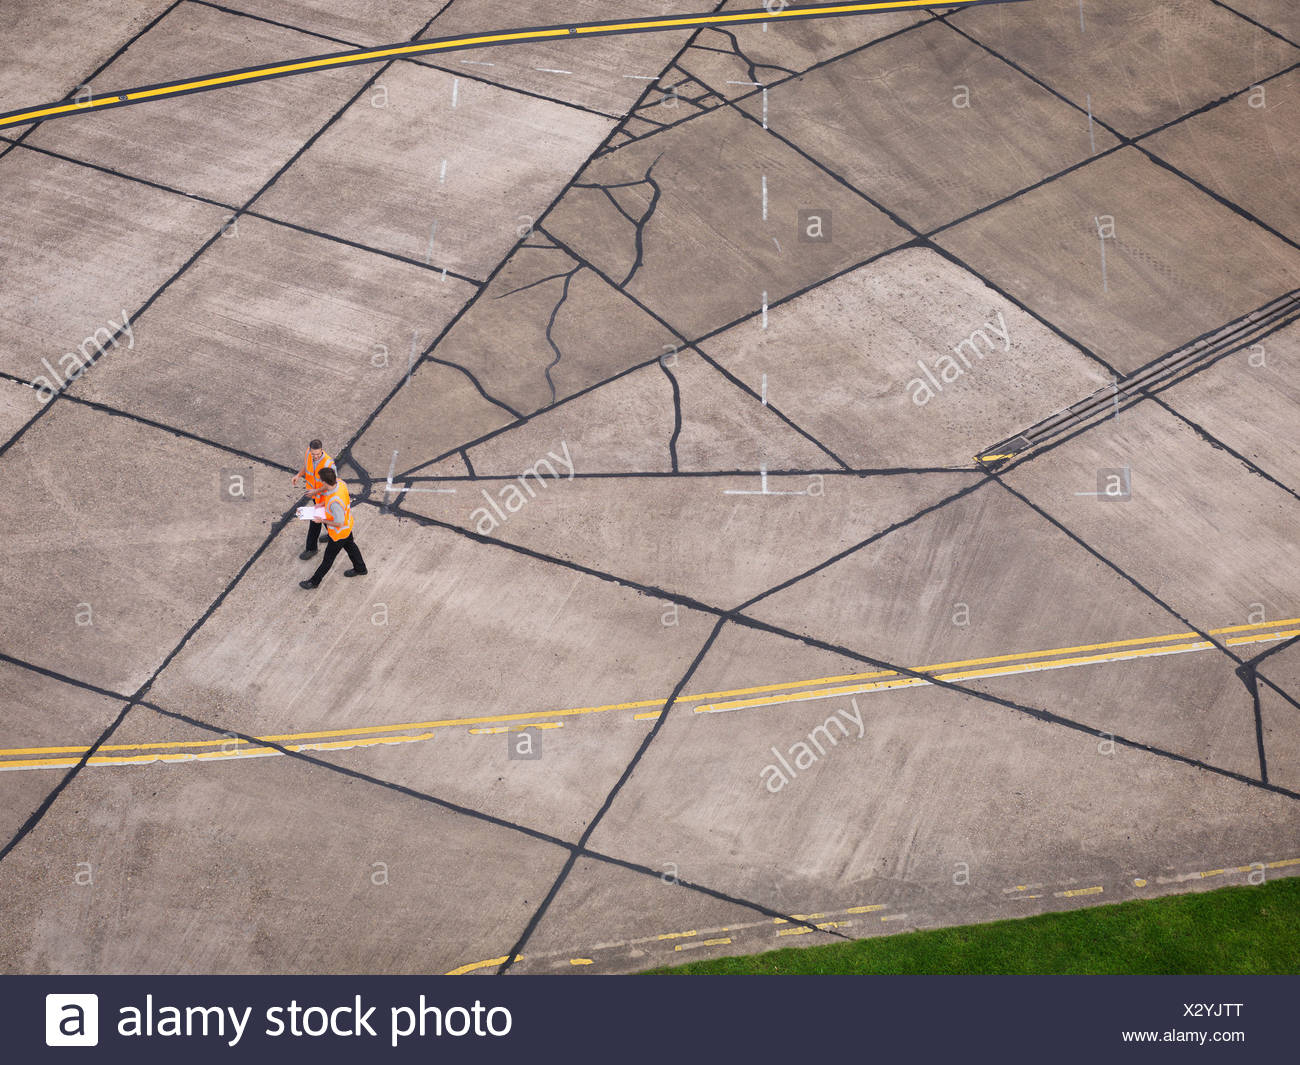 Engineers on aircraft runway - Stock Image